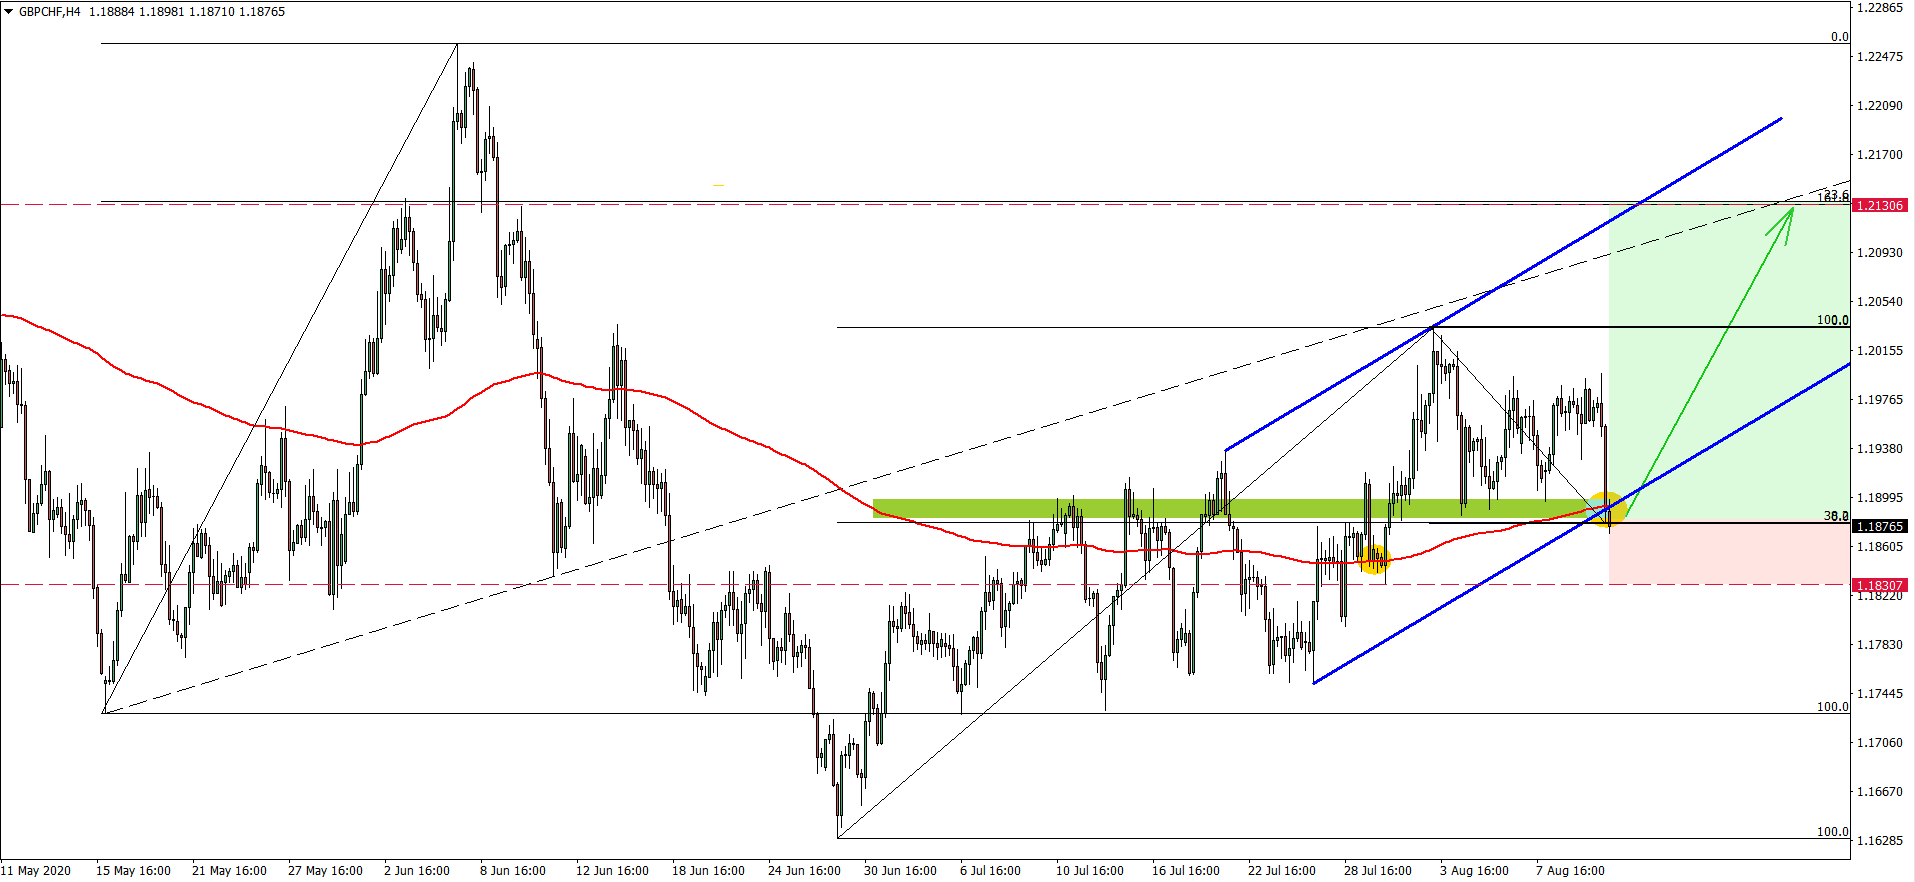 GBPCHF 4hour chart Aug 12th 2020